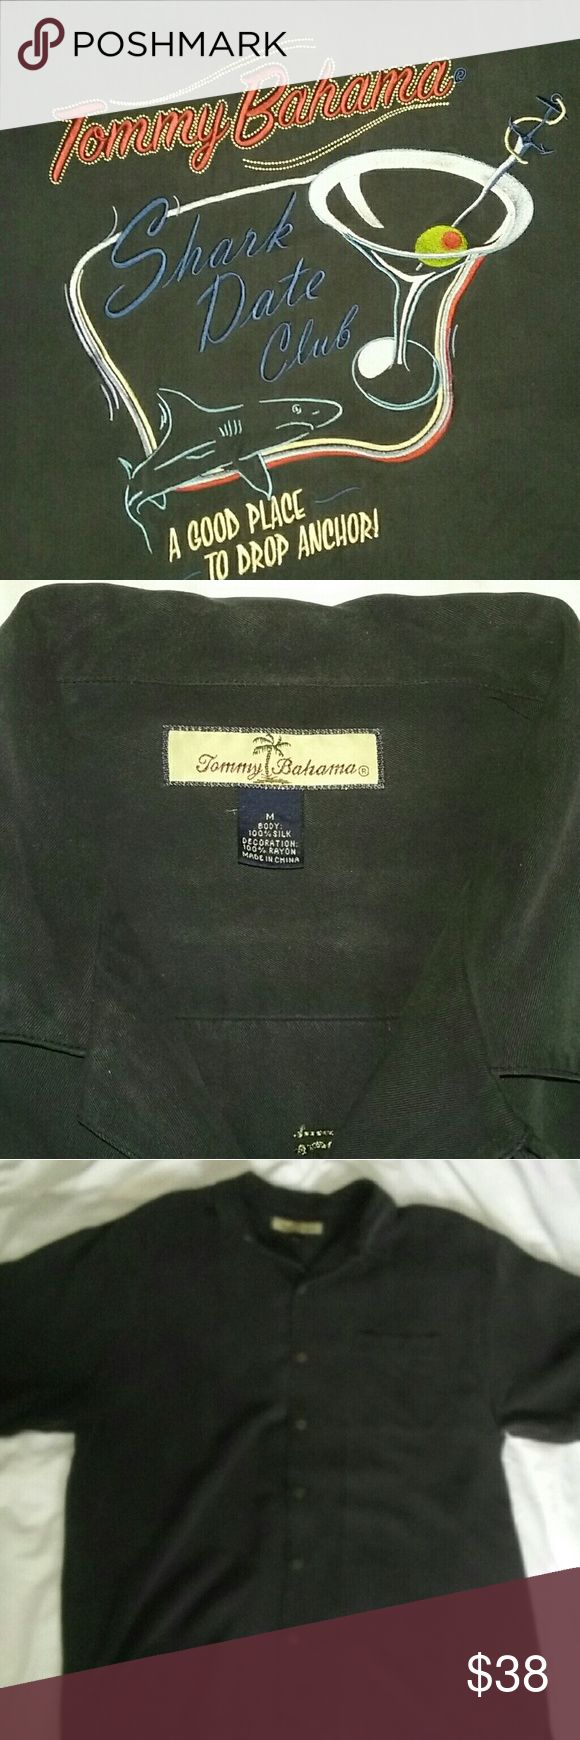 Tommy Bahama Black Silk Shirt 100% Silk Size: Medium  Make me an offer! I will negotiate on EVERYTHING in my closet. Tommy Bahama Shirts Casual Button Down Shirts